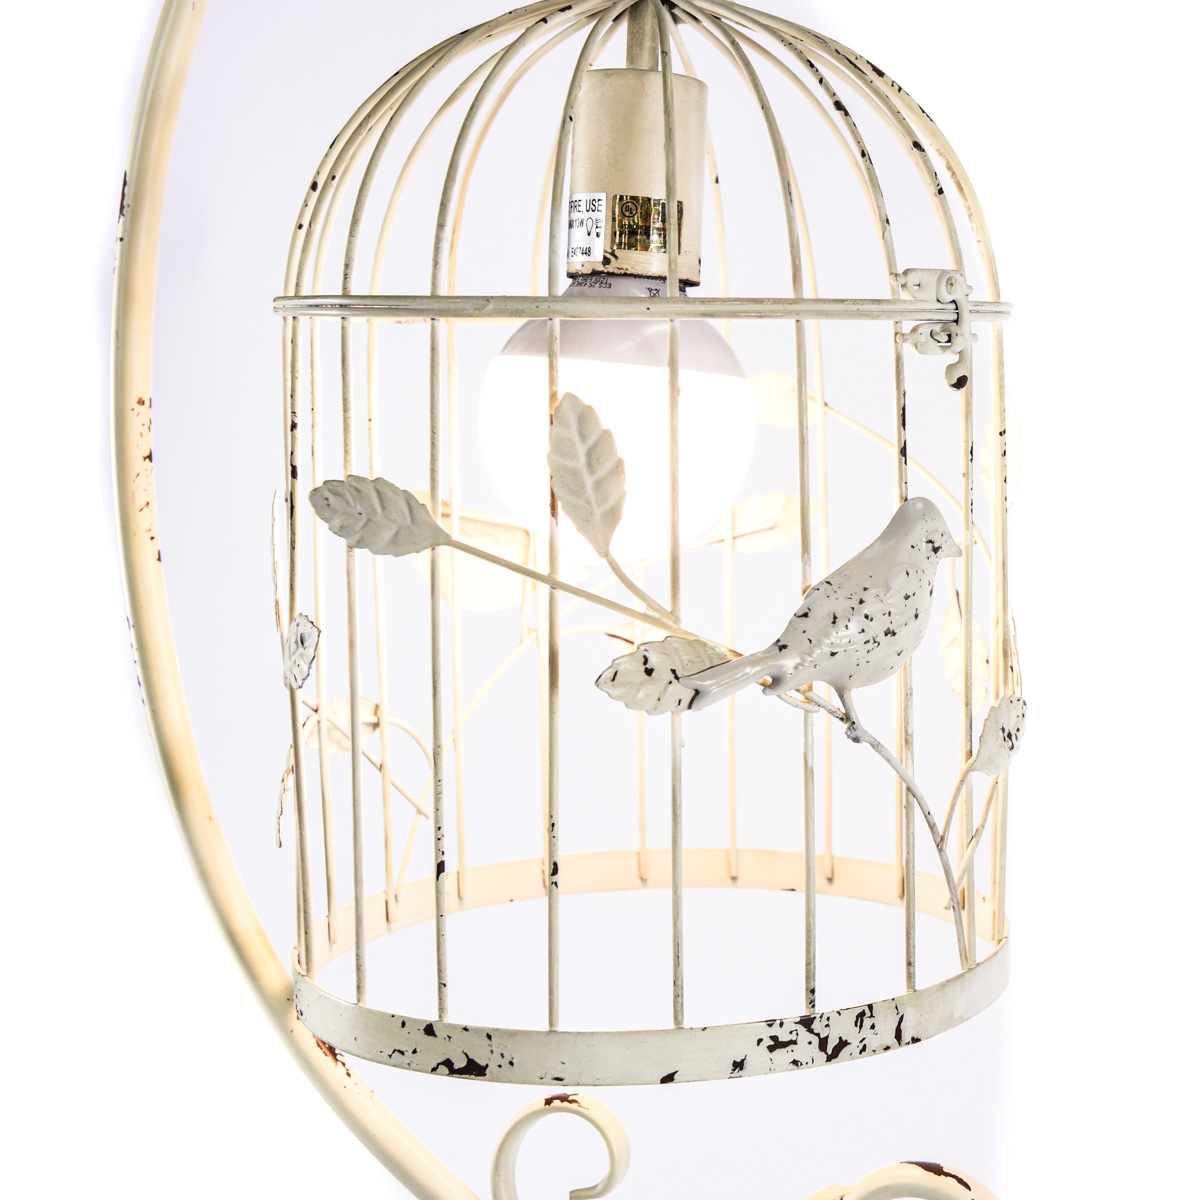 from cover item metal guard pendant vintage nordic industrial classic lamp cage birdcage light wire black lights iron lampshade in